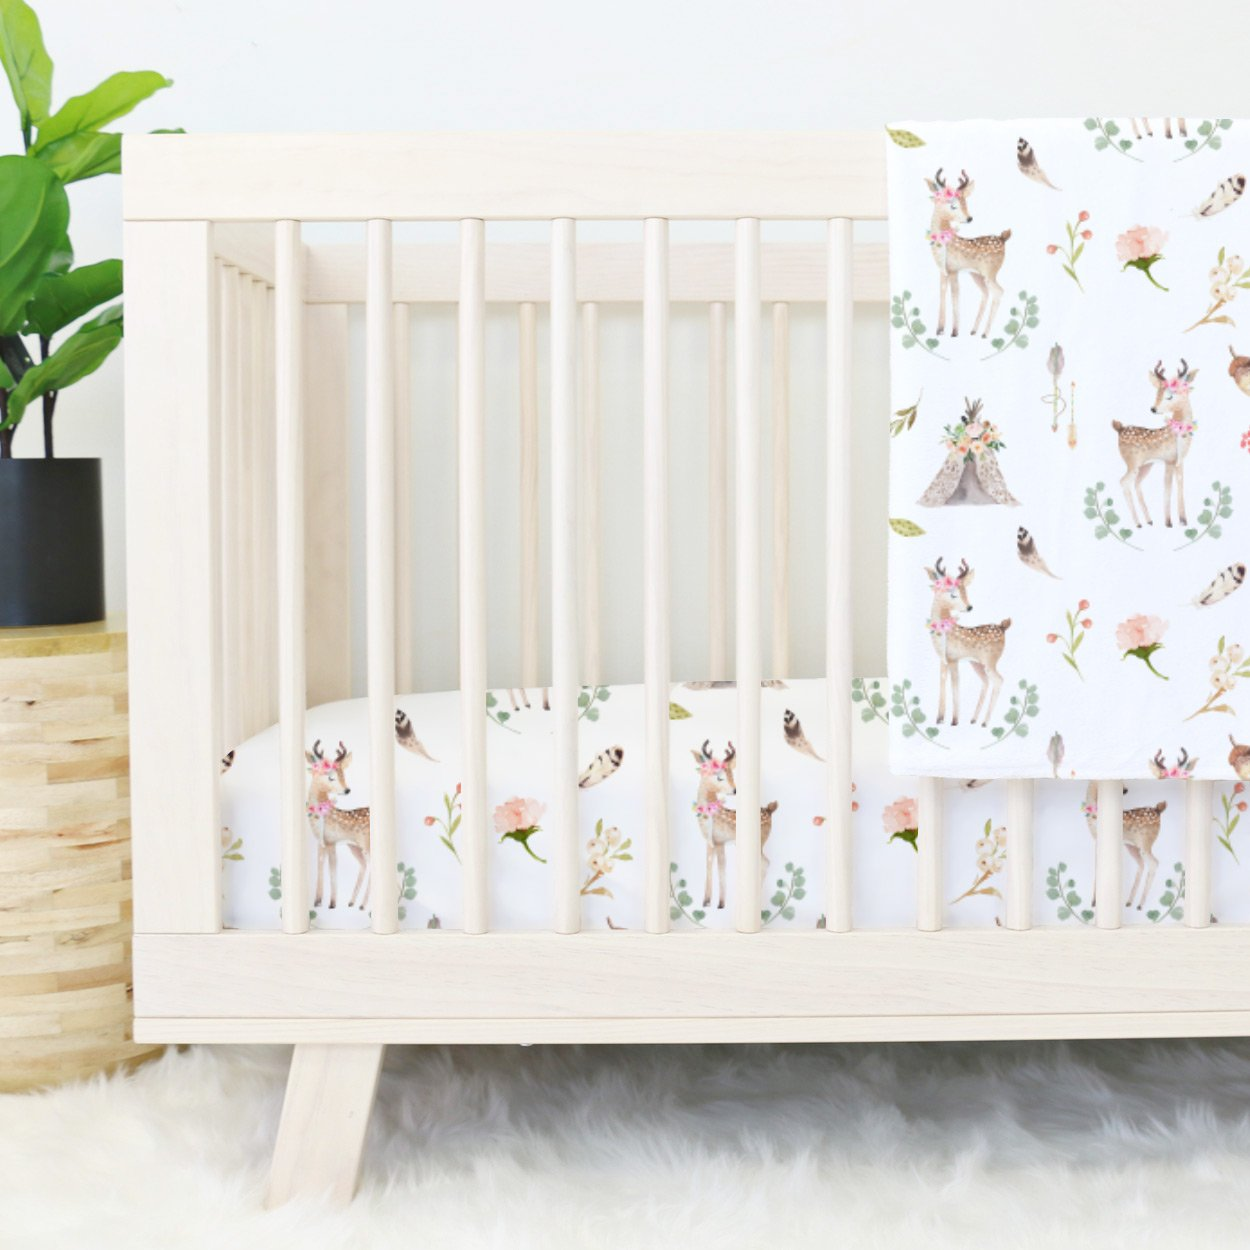 3defaab166fb4 Blakely's Boho Woodland Deer Nursery Bedding